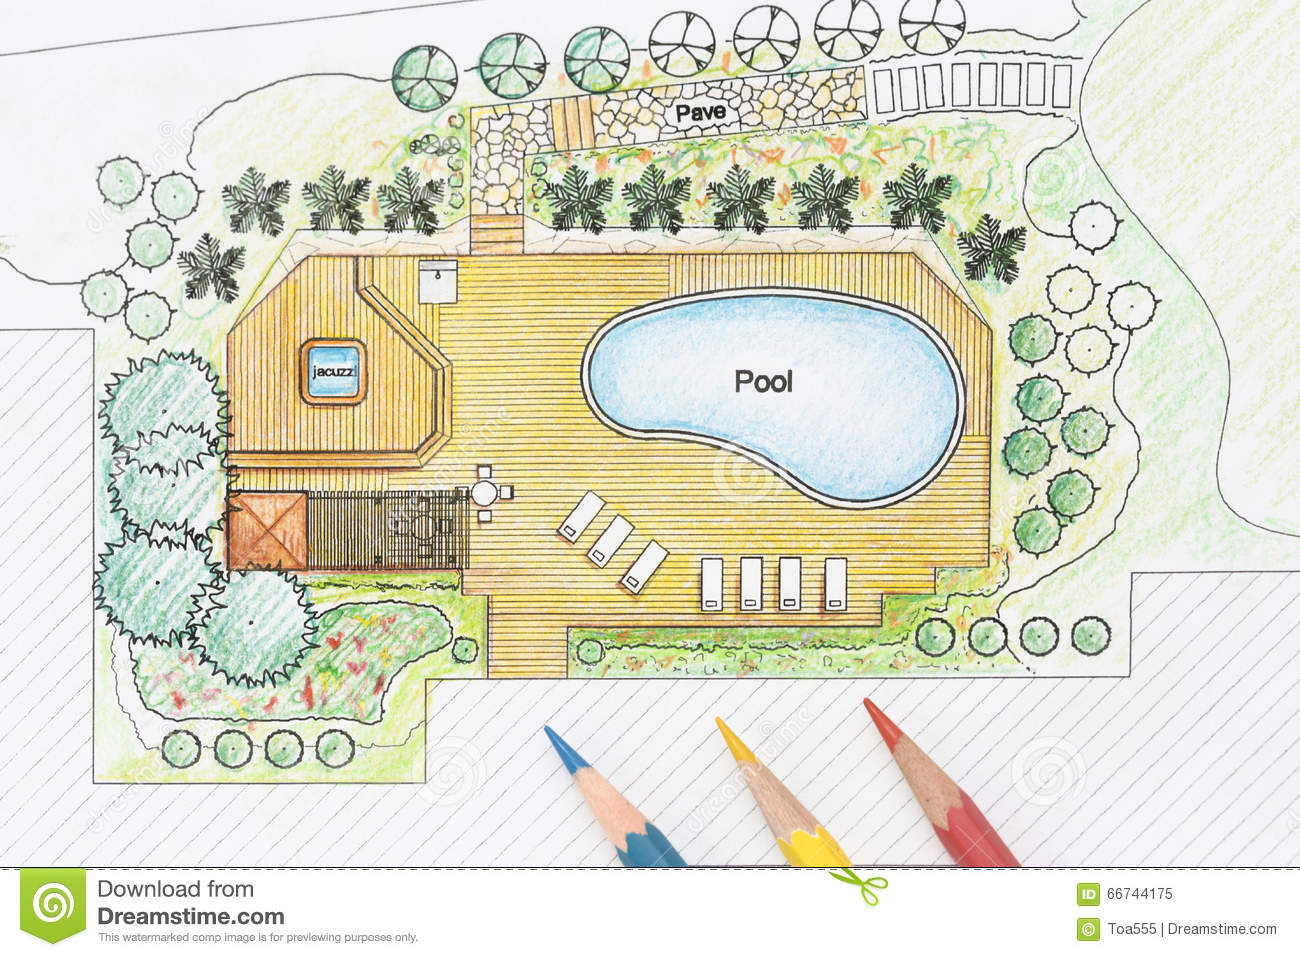 Architect Designs landscape architect designs backyard plan with pool stock